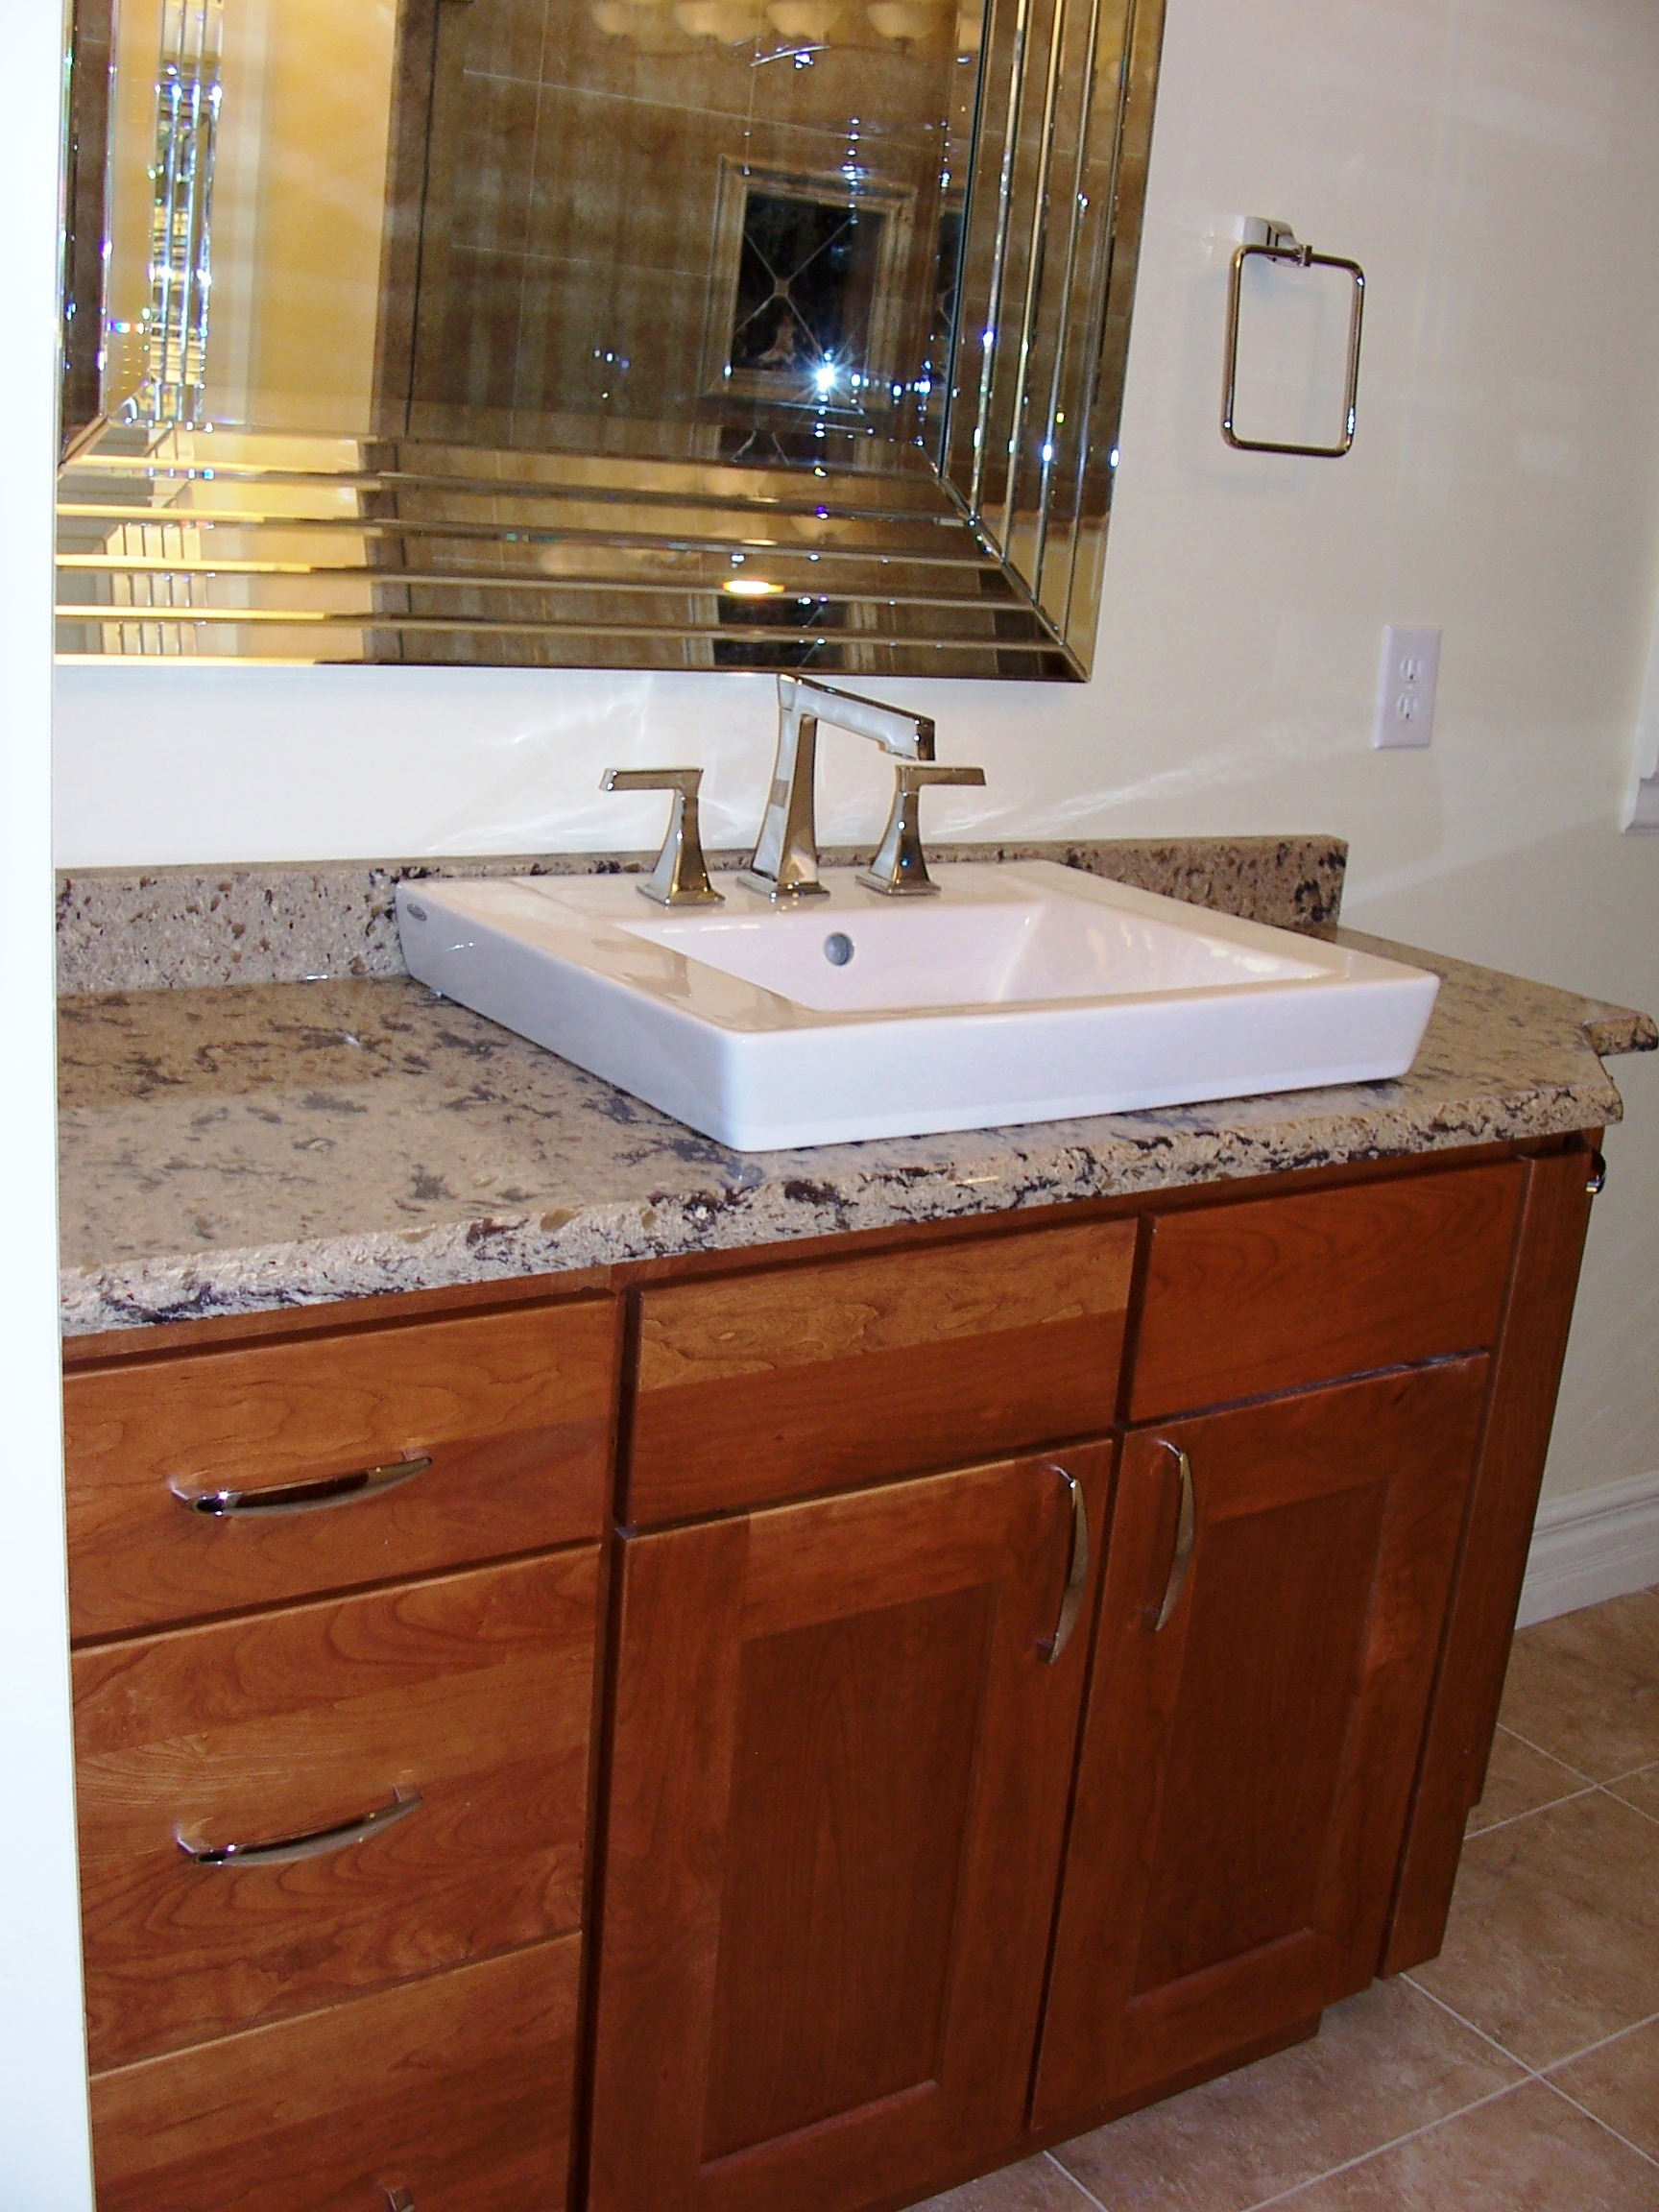 central chattanooga images tn remodeling patio design beautiful bathroom bath istock shop